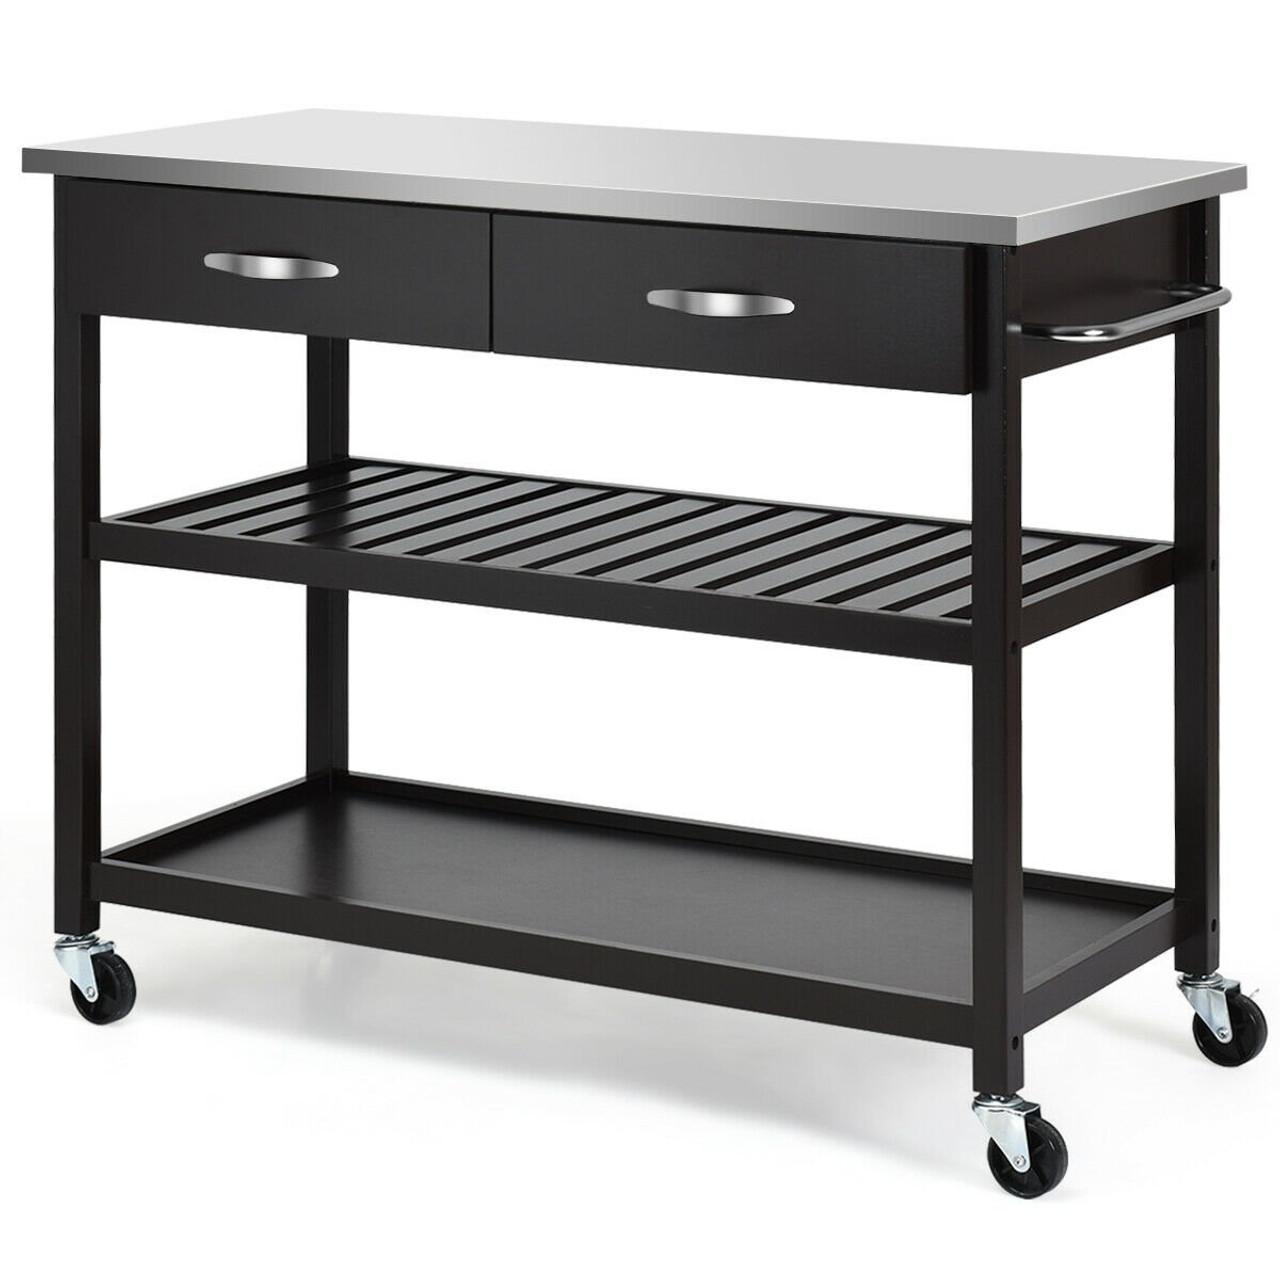 Stainless Steel Rolling Kitchen Island Trolley Cart Brown Hw60458bn By Cw